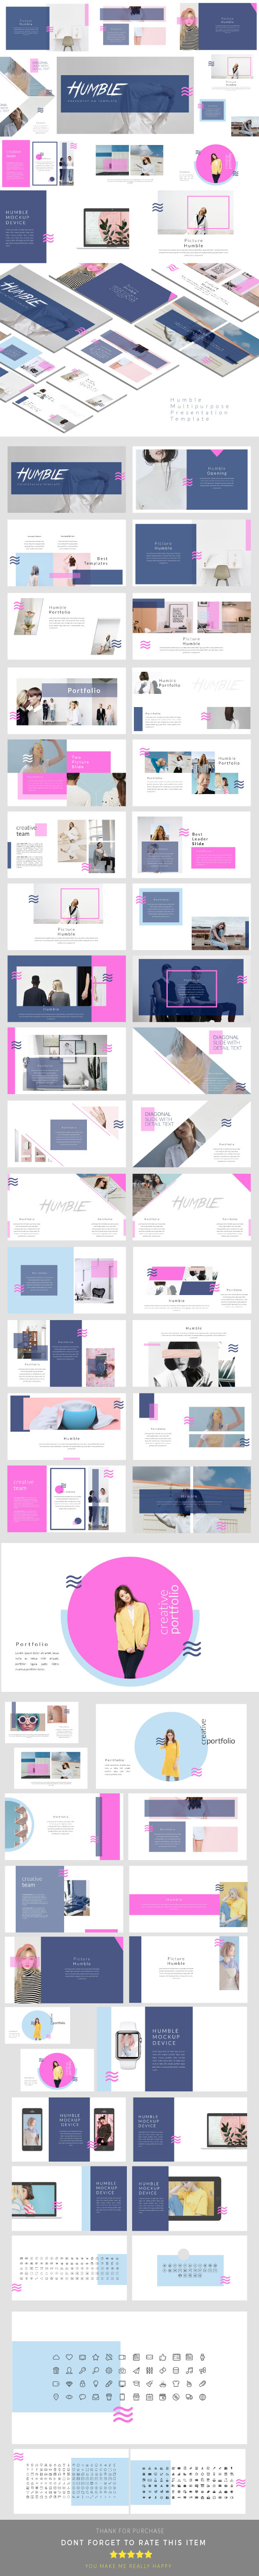 GraphicRiver Humble Keynote Templates 21089252